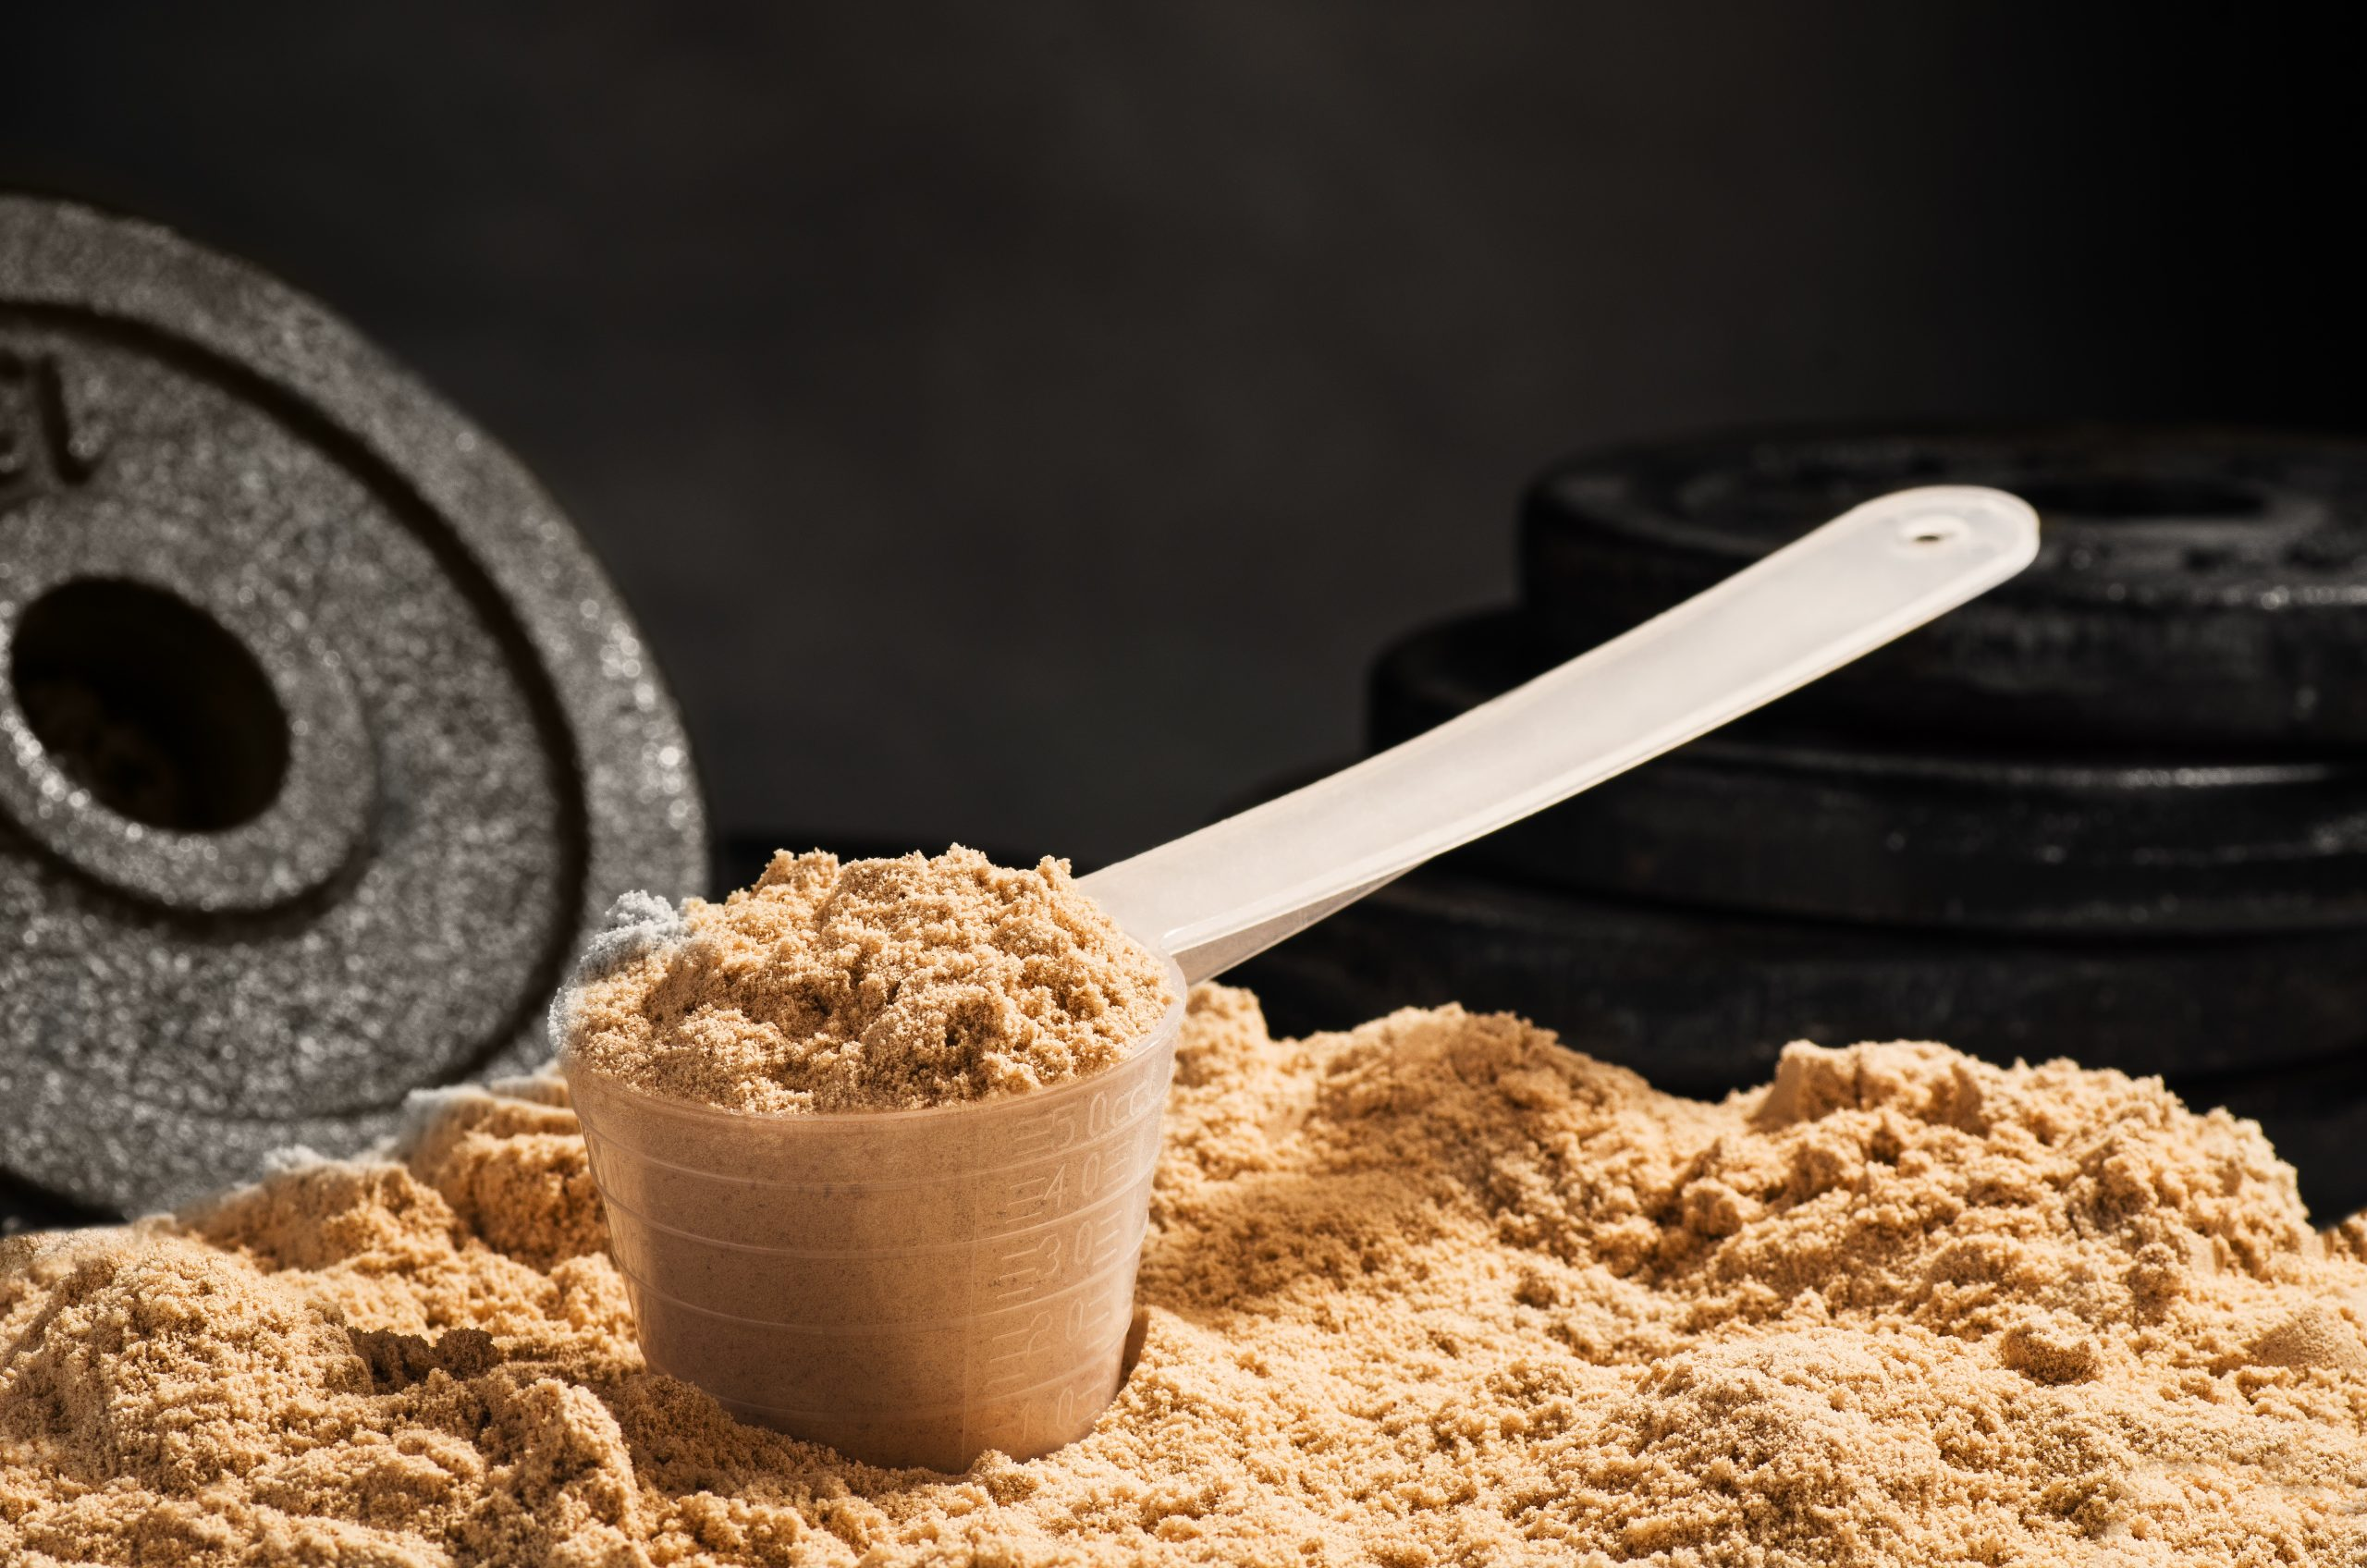 Scoop of whey protein on black background.